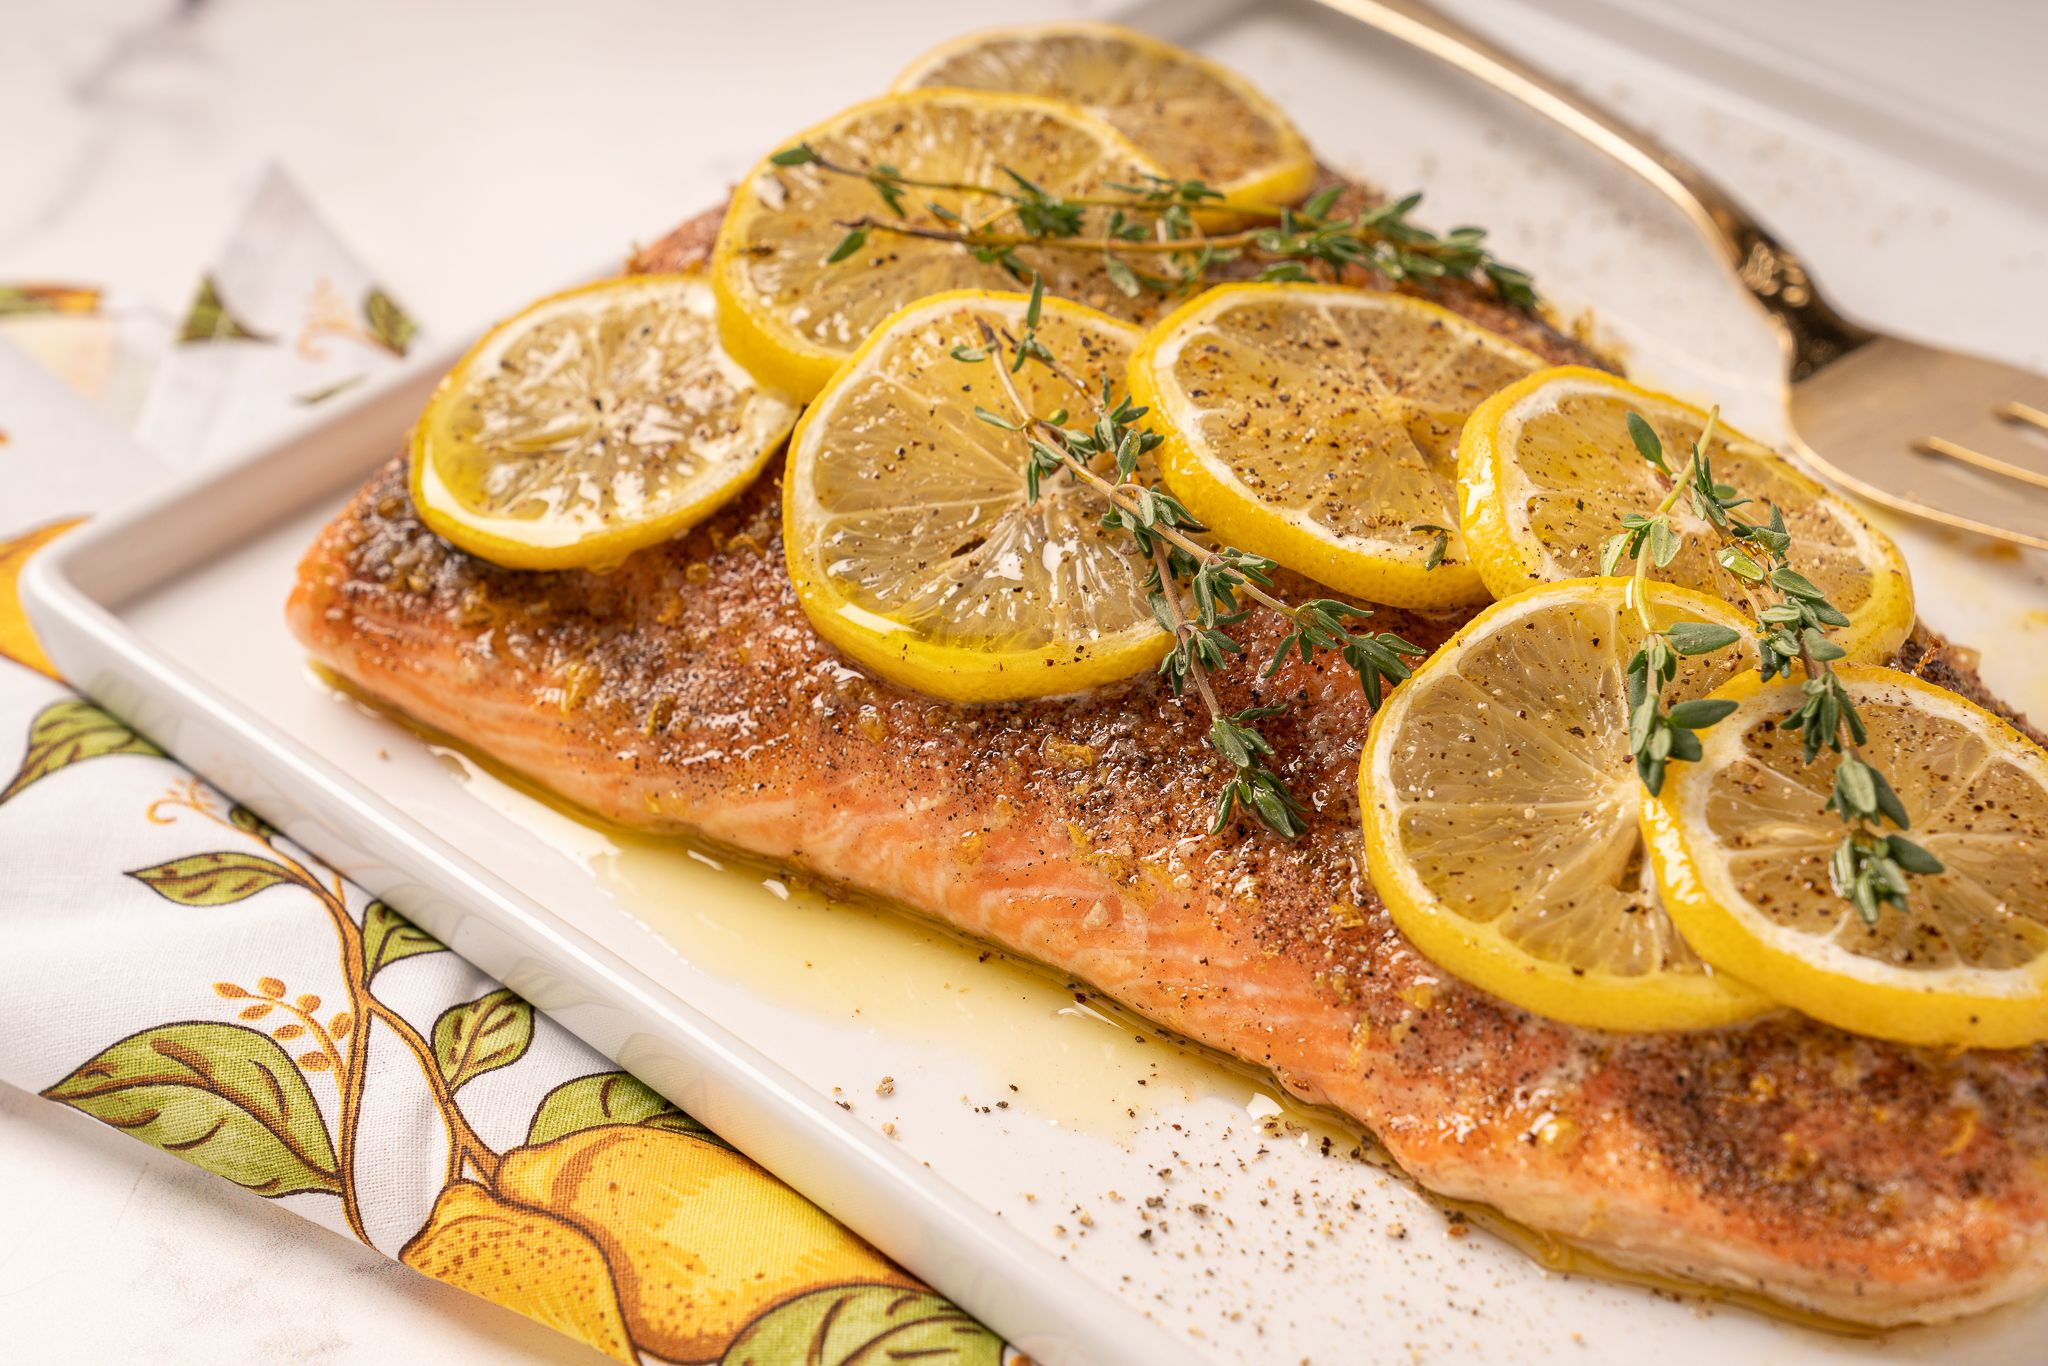 Make Your Own Lemon Pepper Seasoning for This Salmon